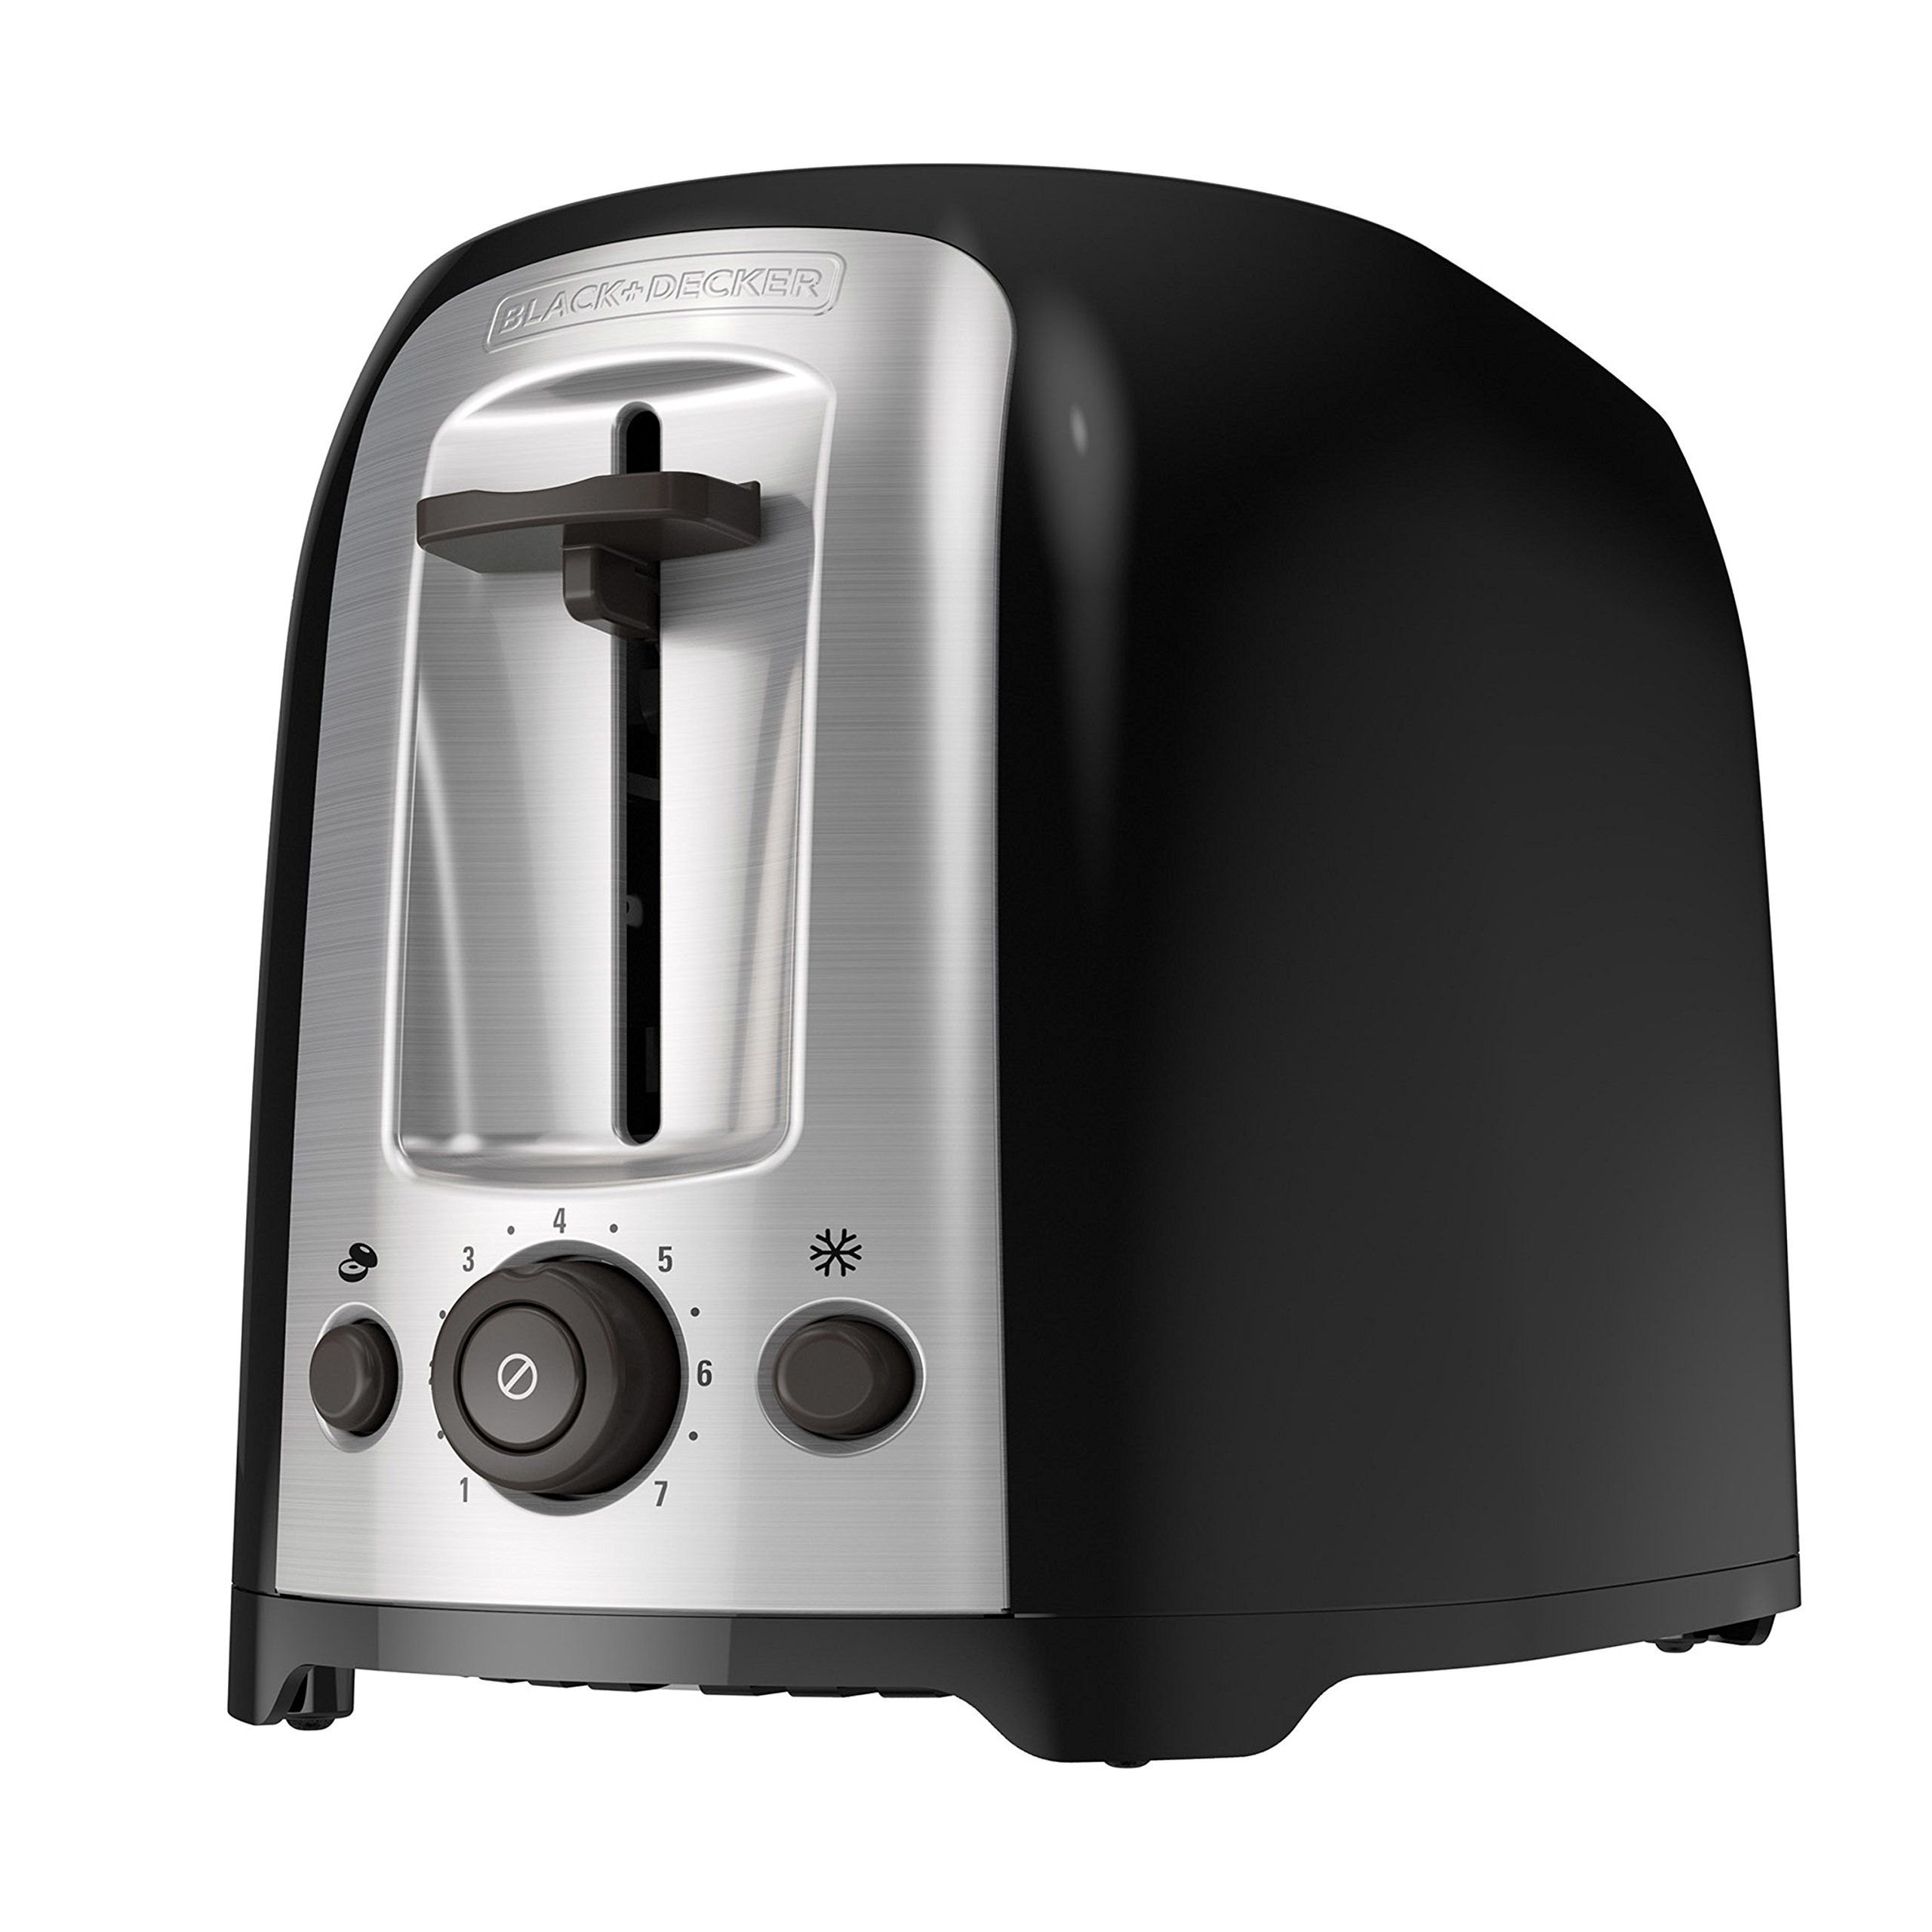 BLACK+DECKER 2-Slice Extra Wide Slot Toaster, Classic Oval, Black with Stainless Steel Accents, TR1278B